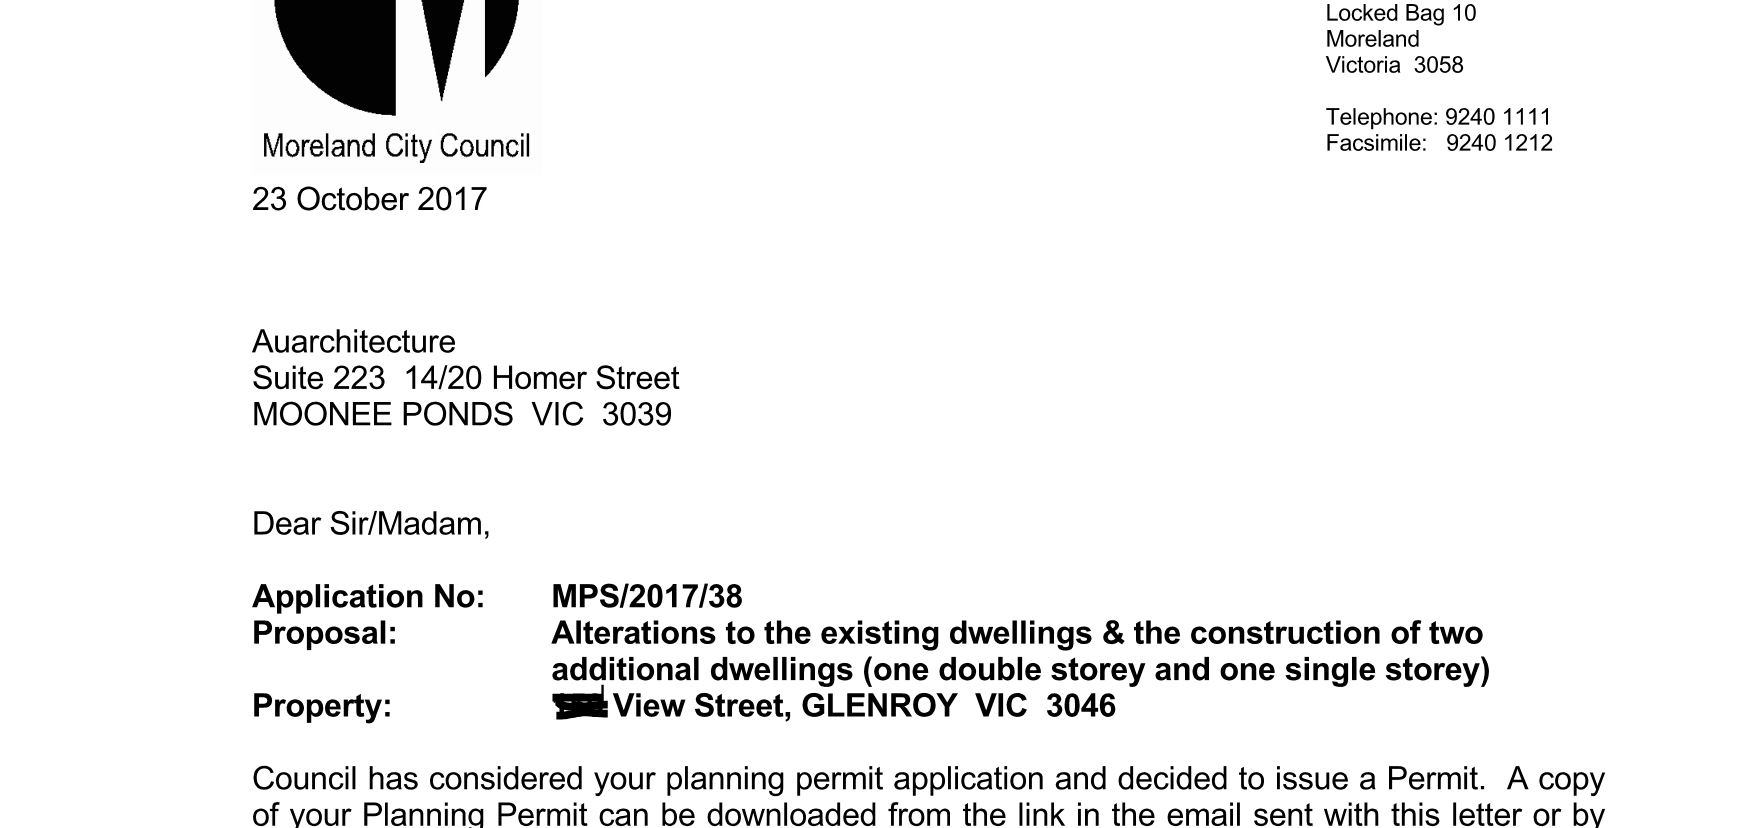 Moreland Council planning permit